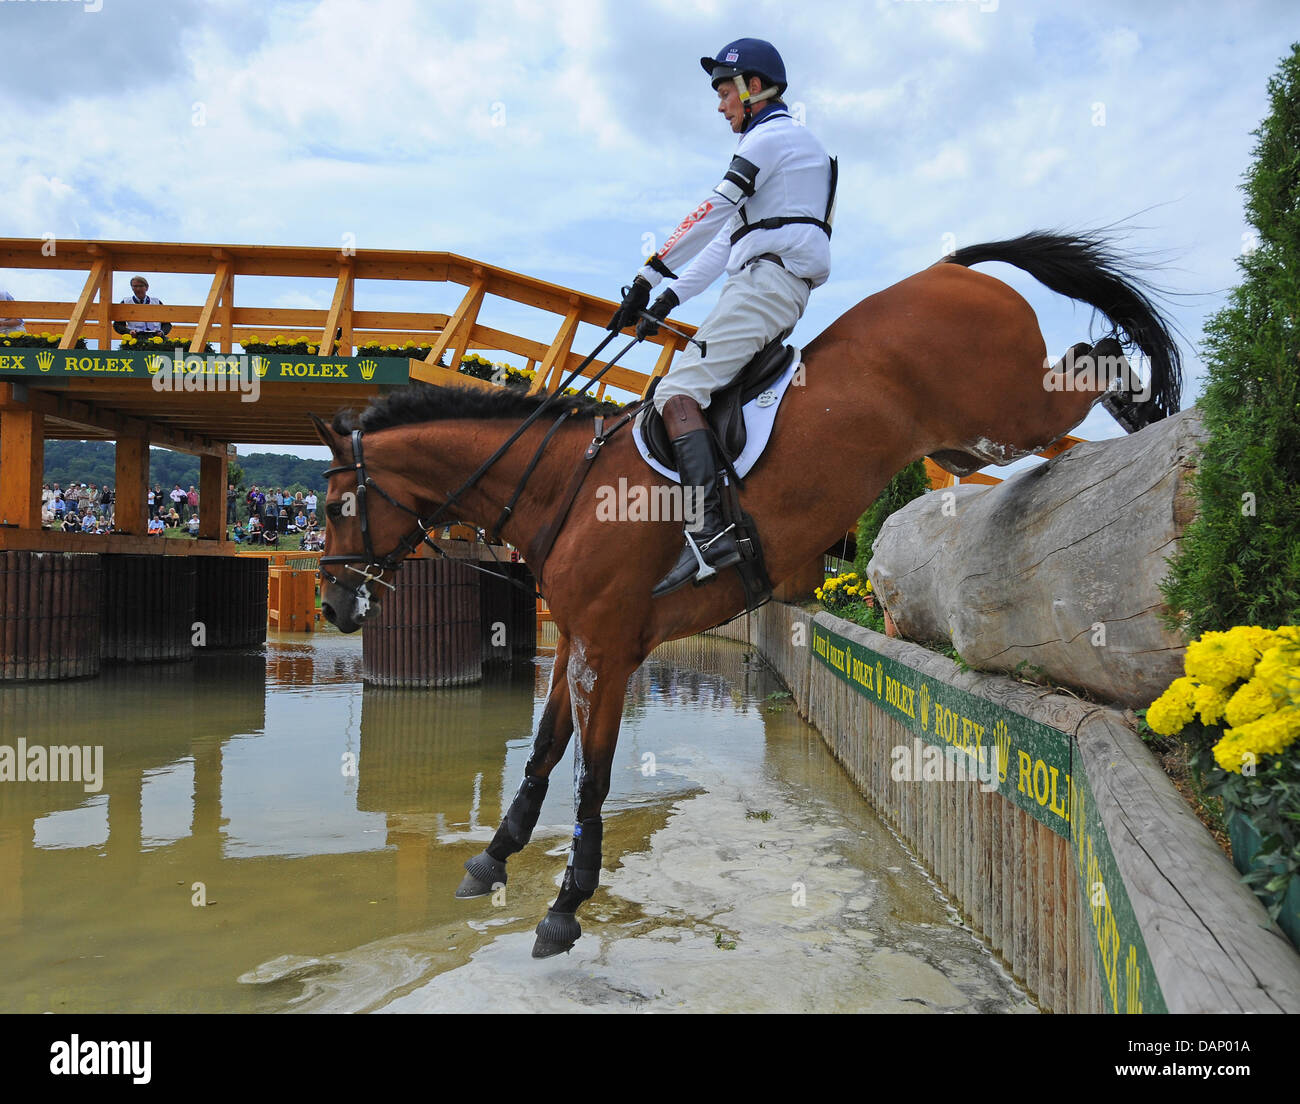 British eventing equestrian William Fox-Pitt jumps over a natural obstacle with his horse Neuf des Coeurs during - Stock Image